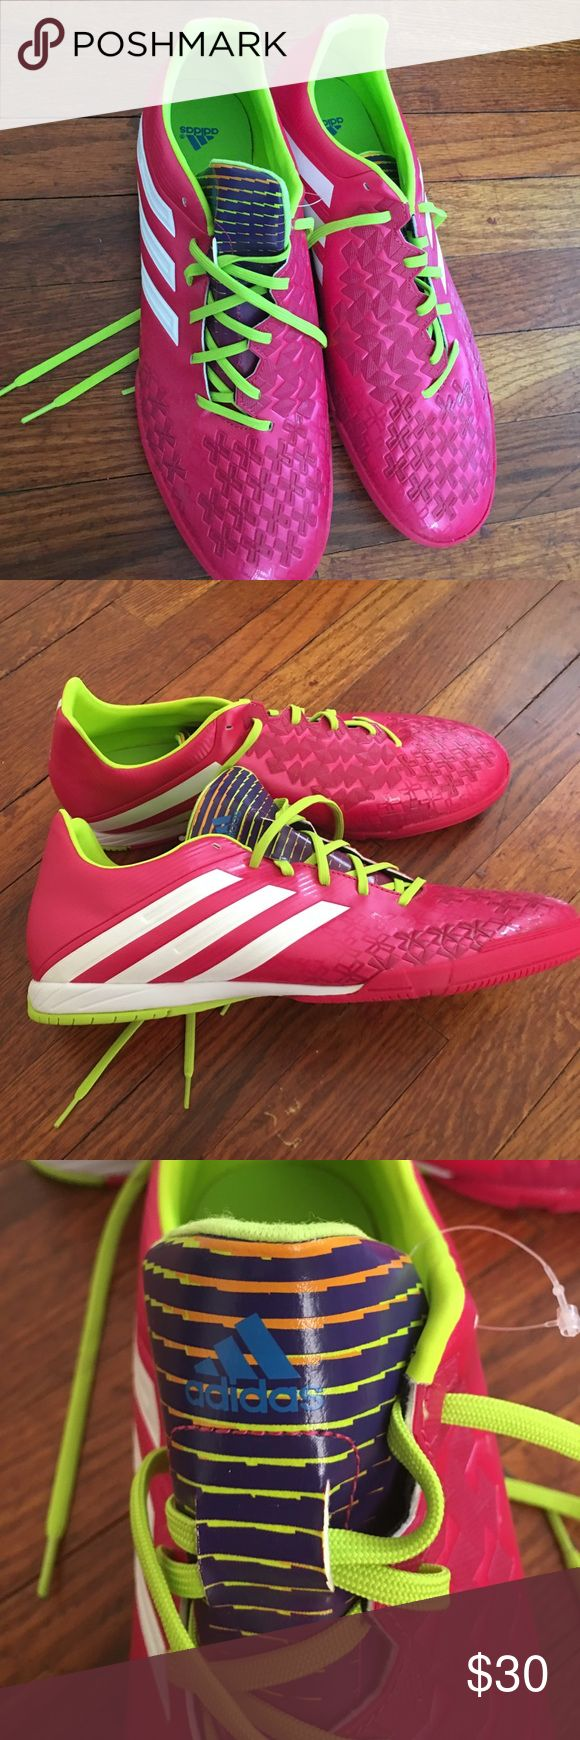 Adidas indoor soccer shoes size 13 NWOT Adidas turf shoes.  Hot pink and white.  Size 13 men's.    Add some flash to your game. adidas Shoes Athletic Shoes